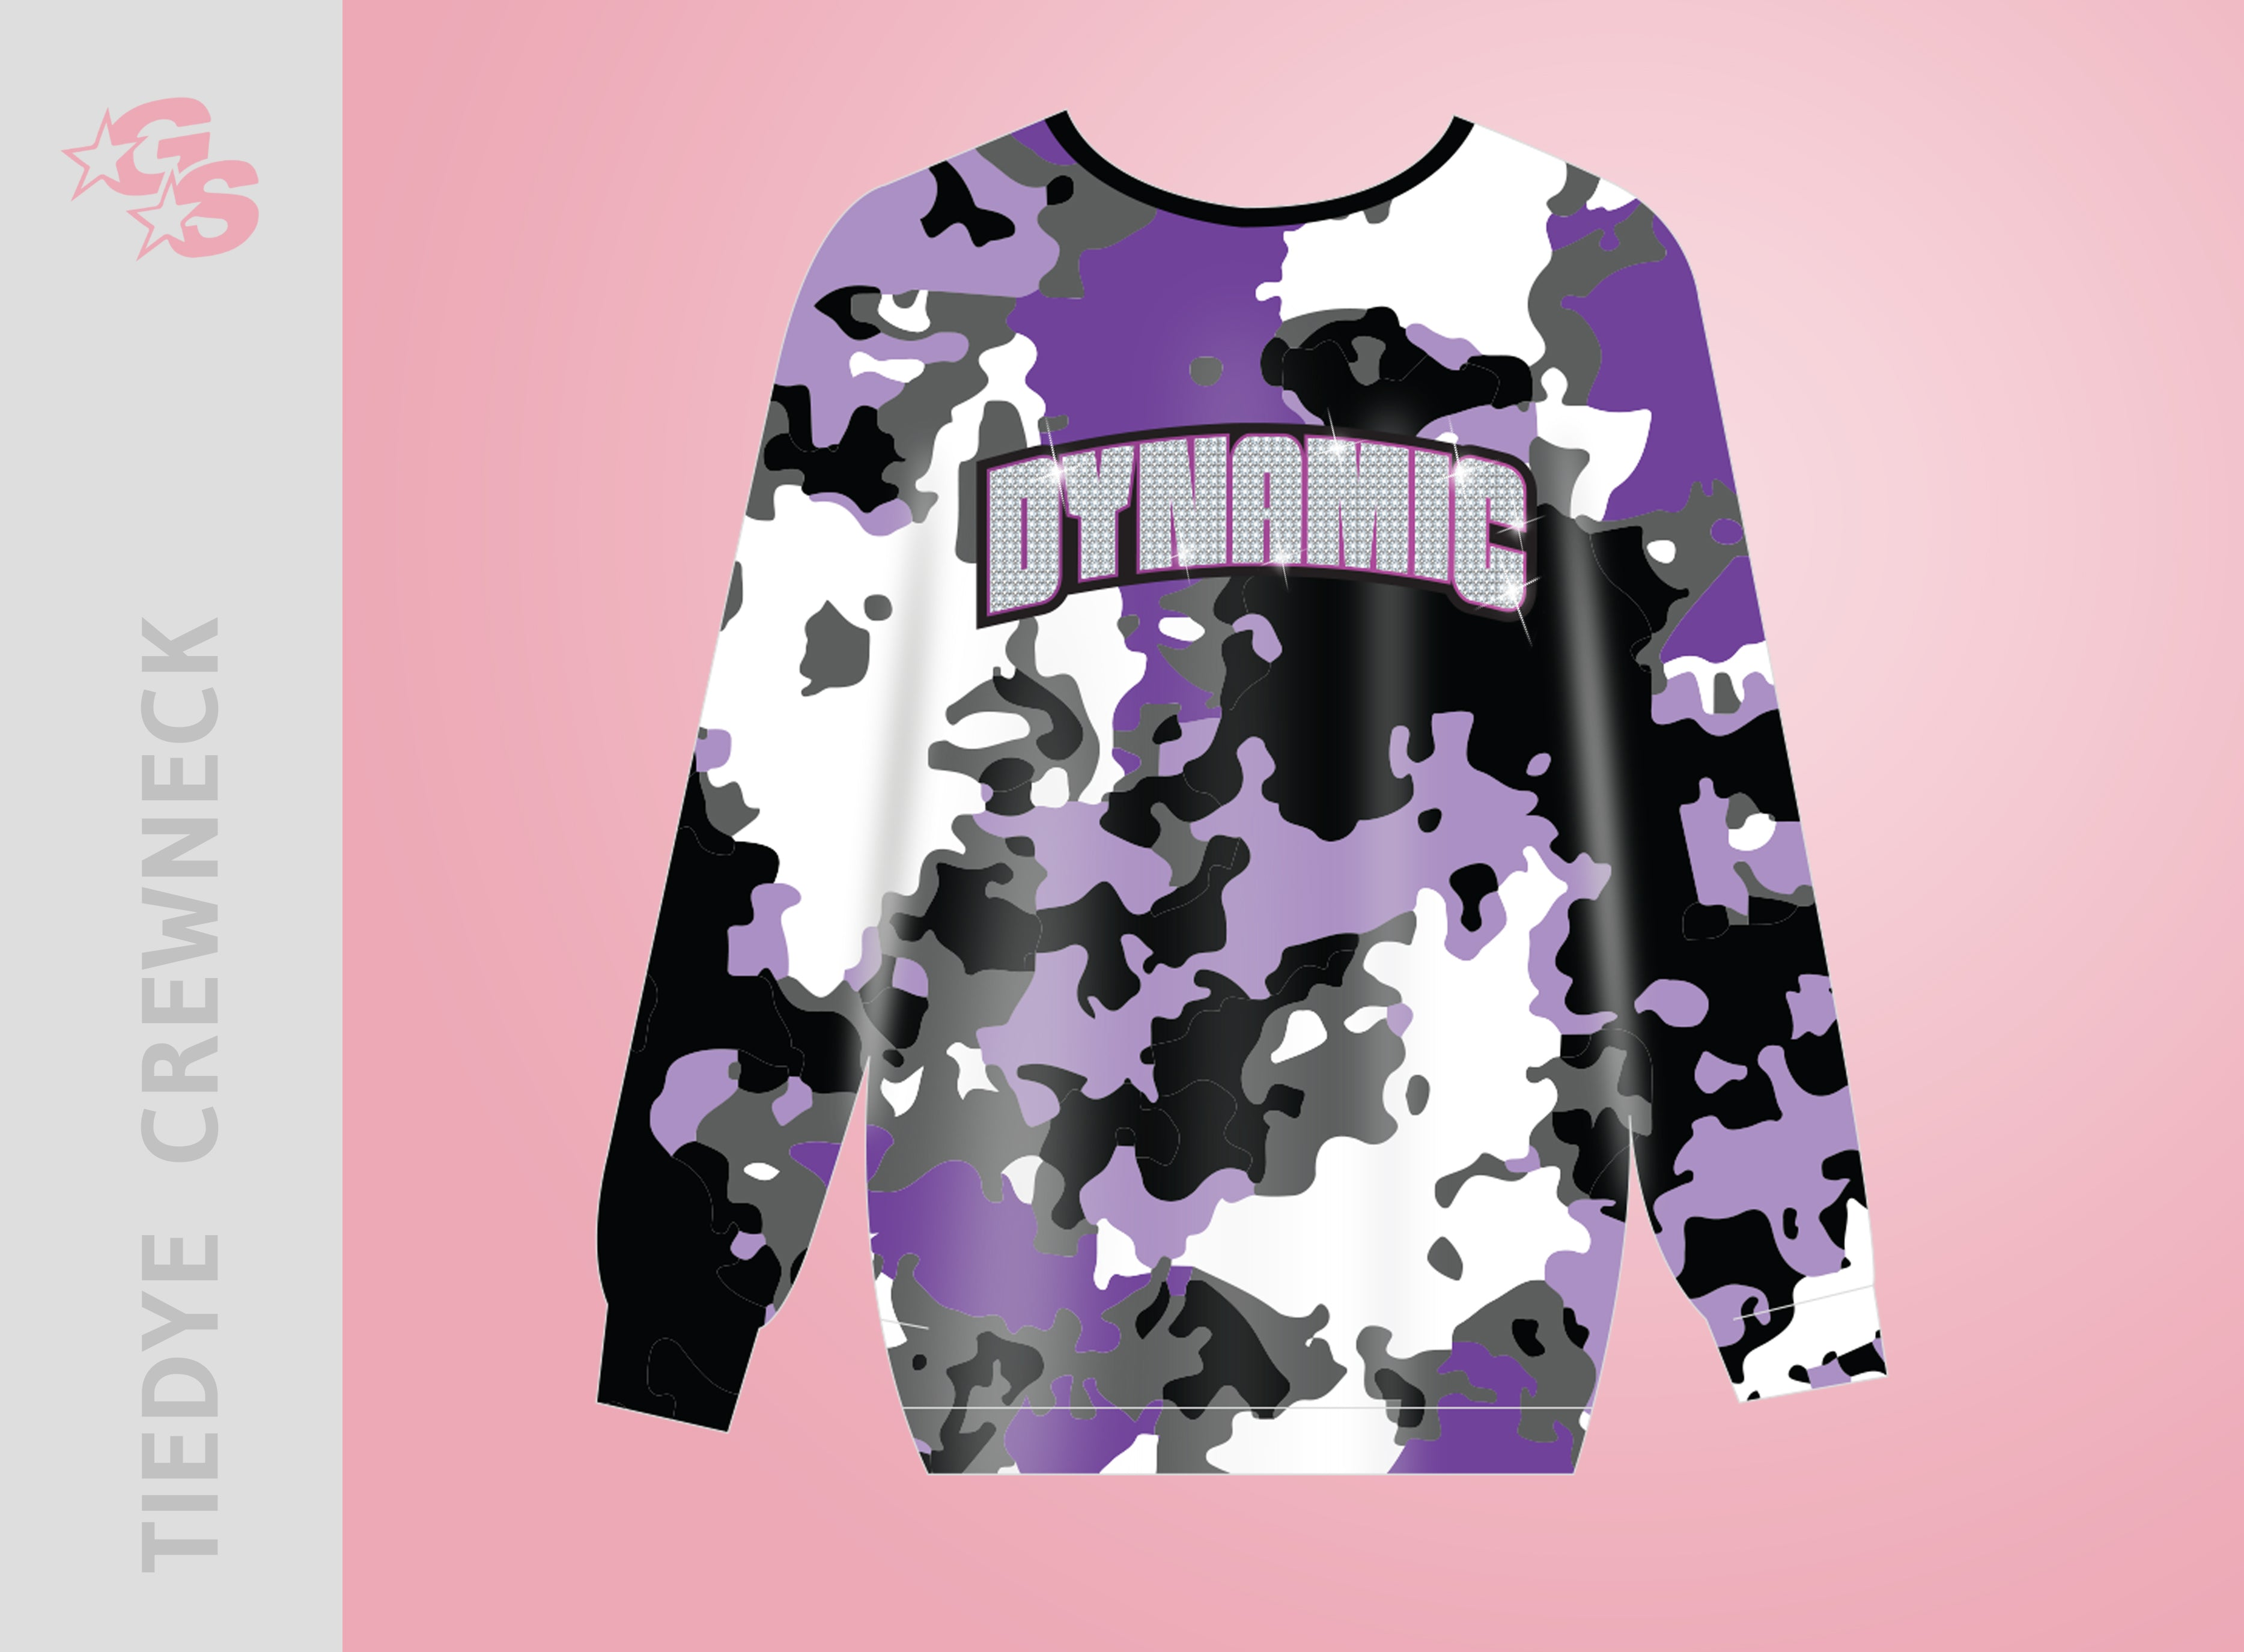 Sublimated Crewneck Tiedye sweatshirt with dyesub and bling combo logo - Dynamic Competitive Cheer